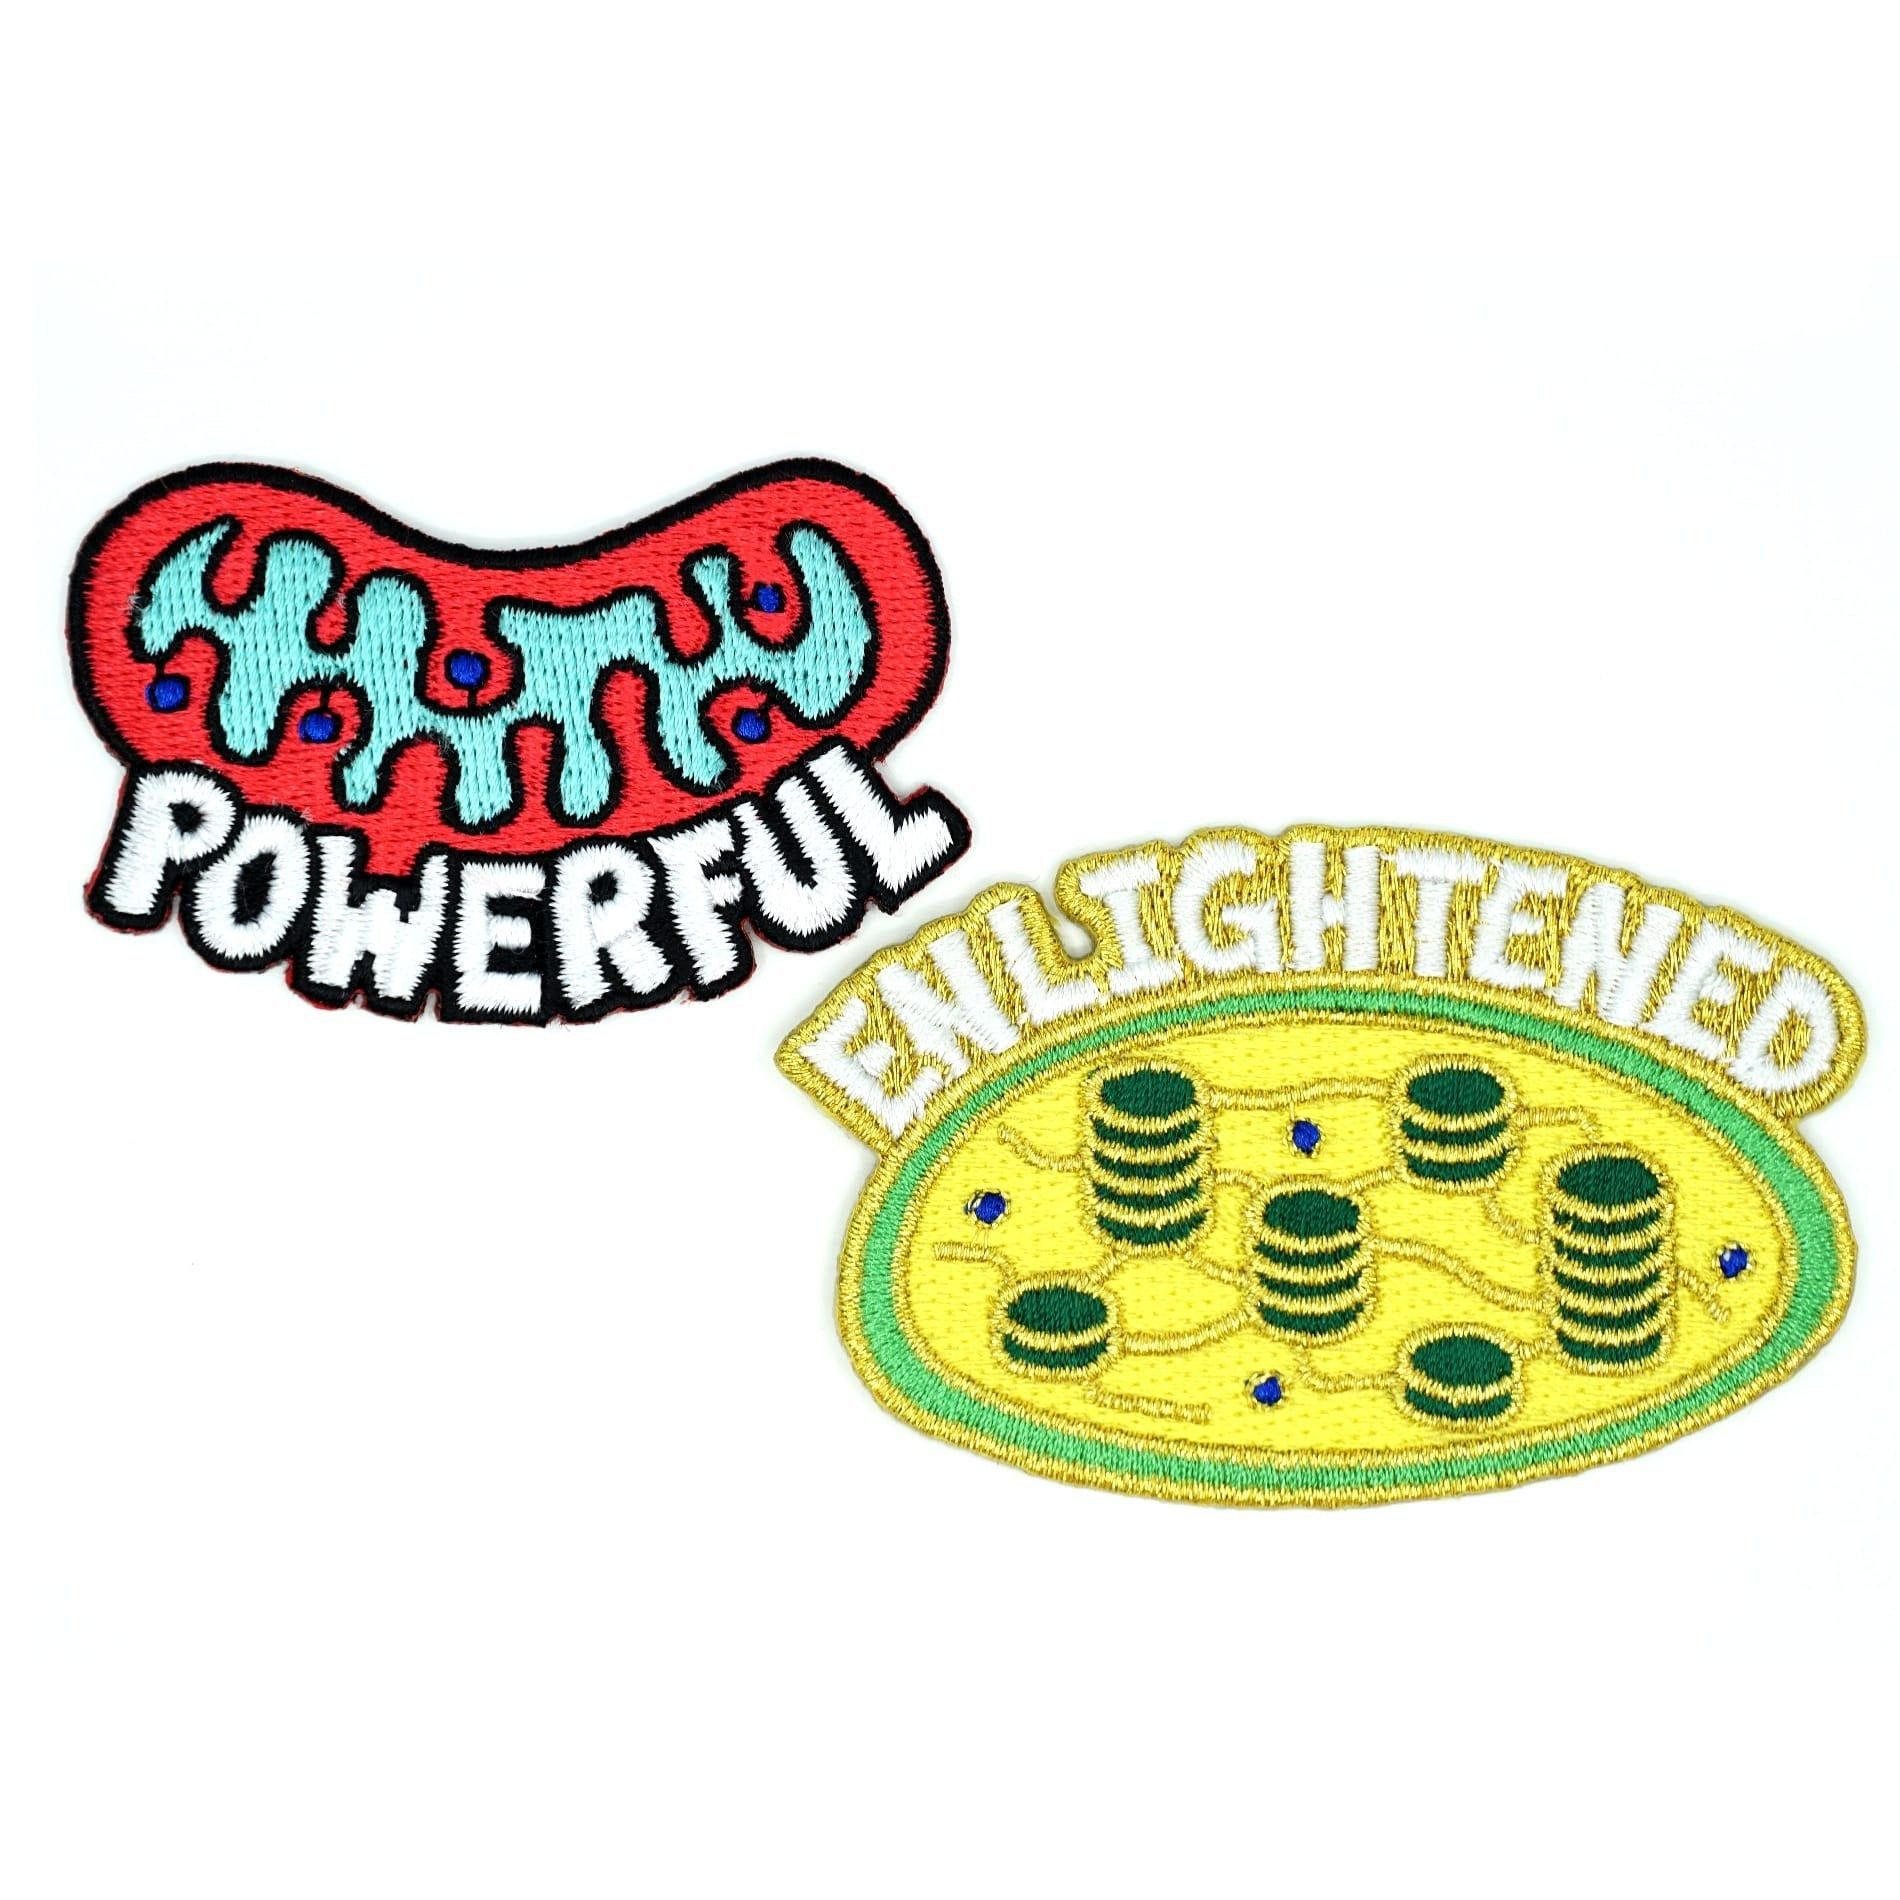 Cellular Organelle Patches Chloroplast & Mitochondria